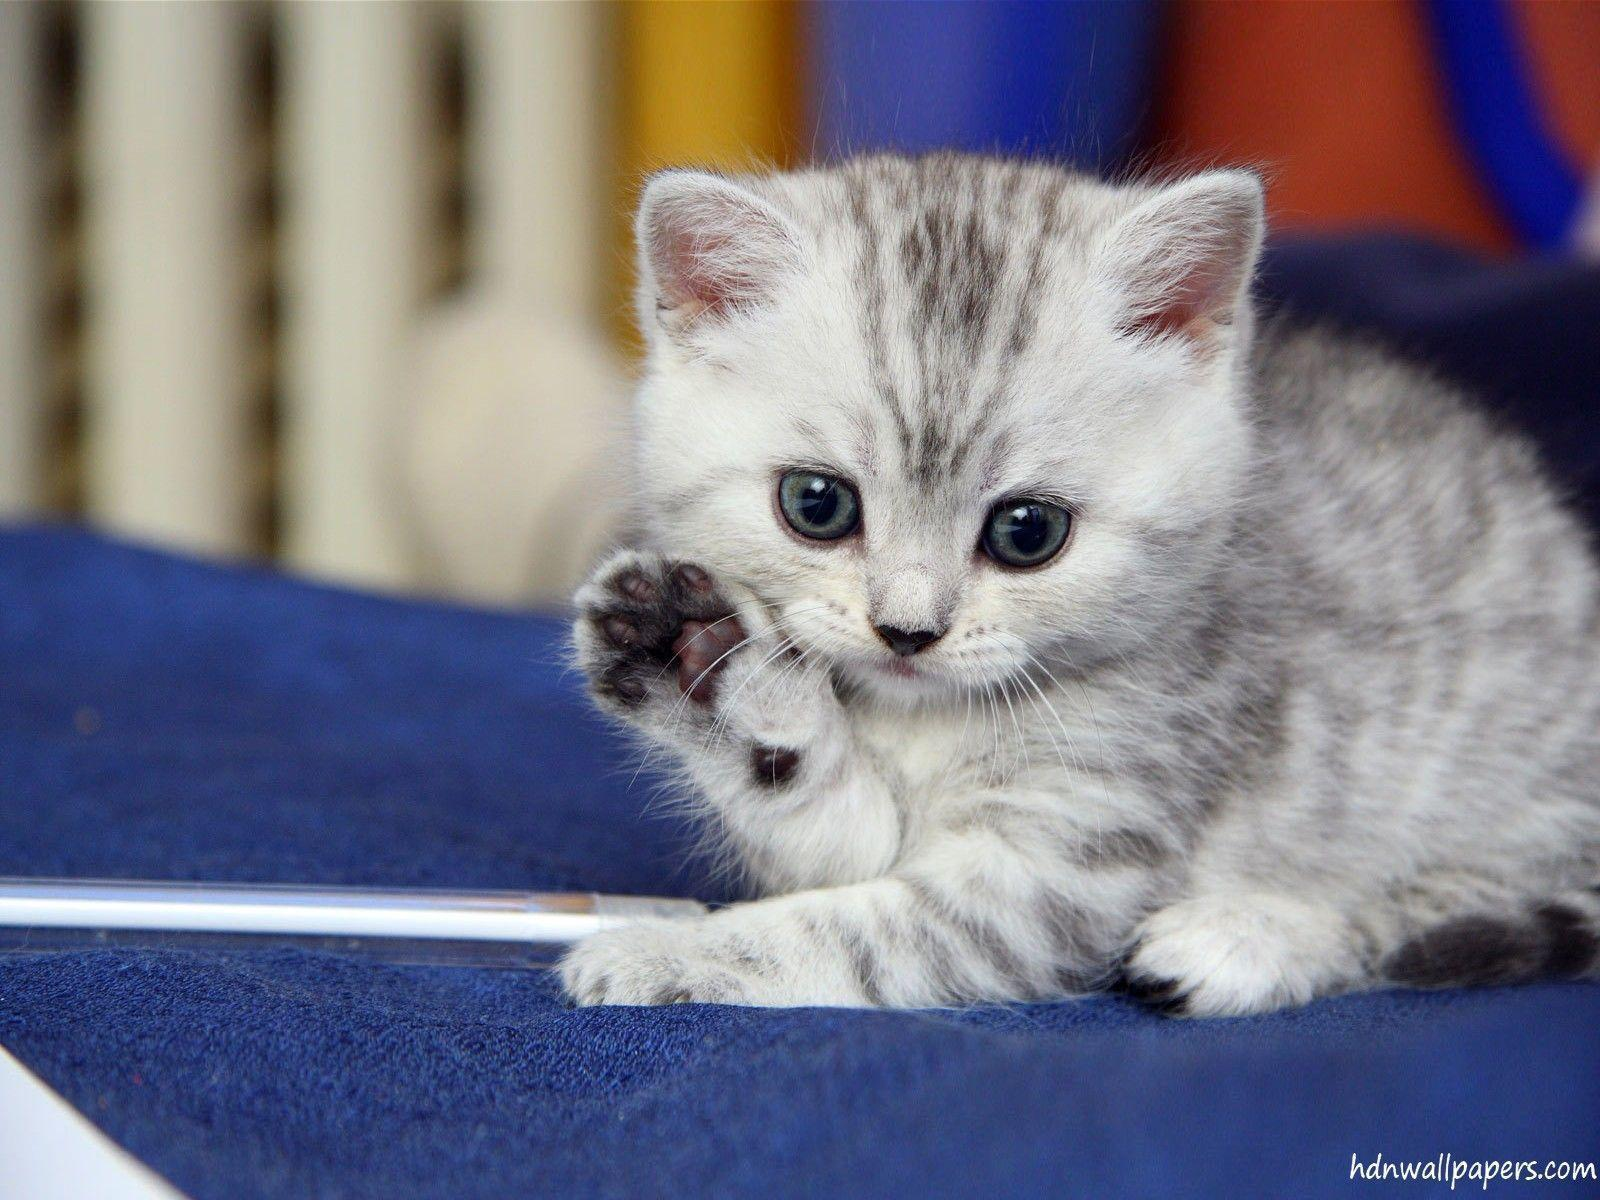 Free cute kitten wallpapers wallpaper cave - Cute kittens hd images ...